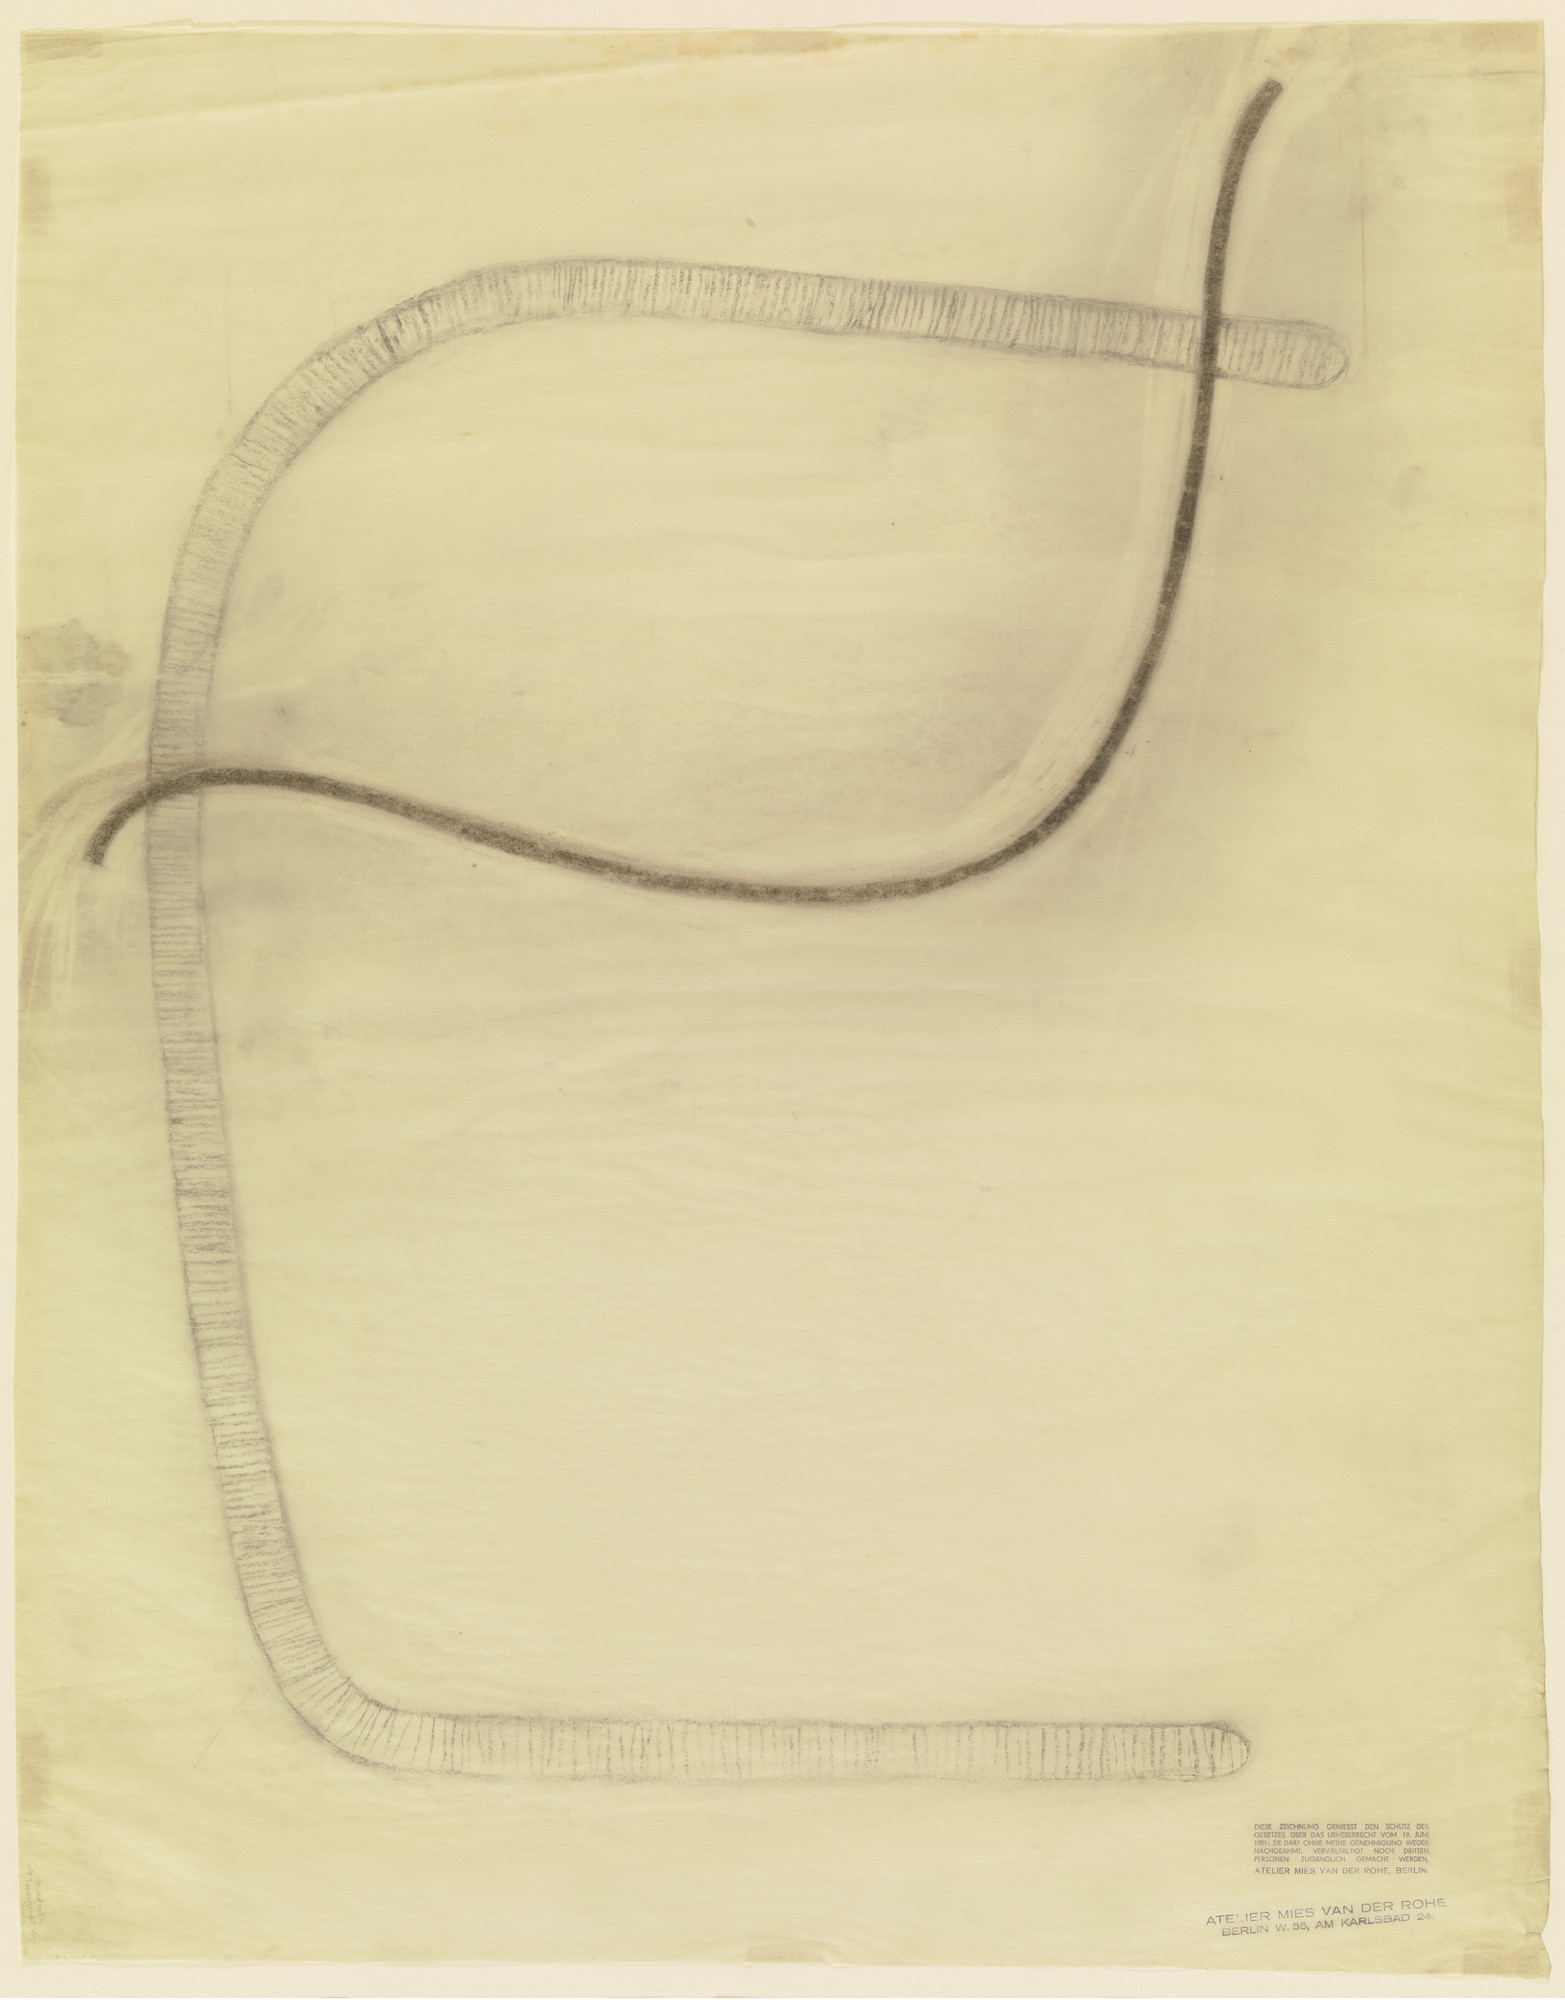 Ludwig Mies van der Rohe. Chair (similar to Brno Chair) (Elevation sketch). c.1931